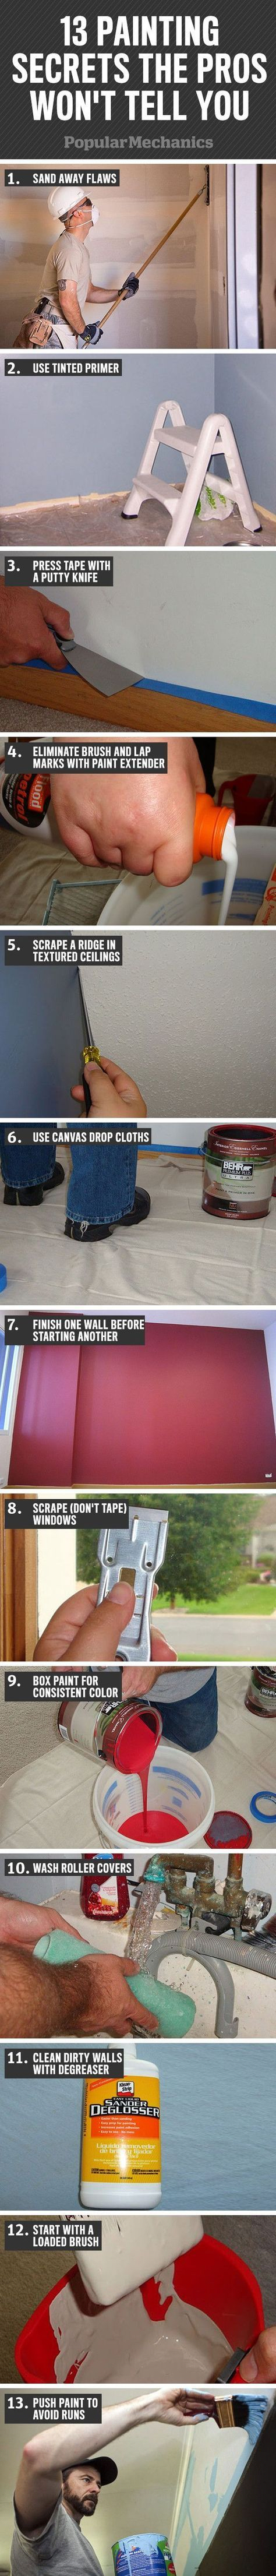 Home improvement tips to help you out home improvement ideas - 13 Painting Secrets The Pros Won T Tell You